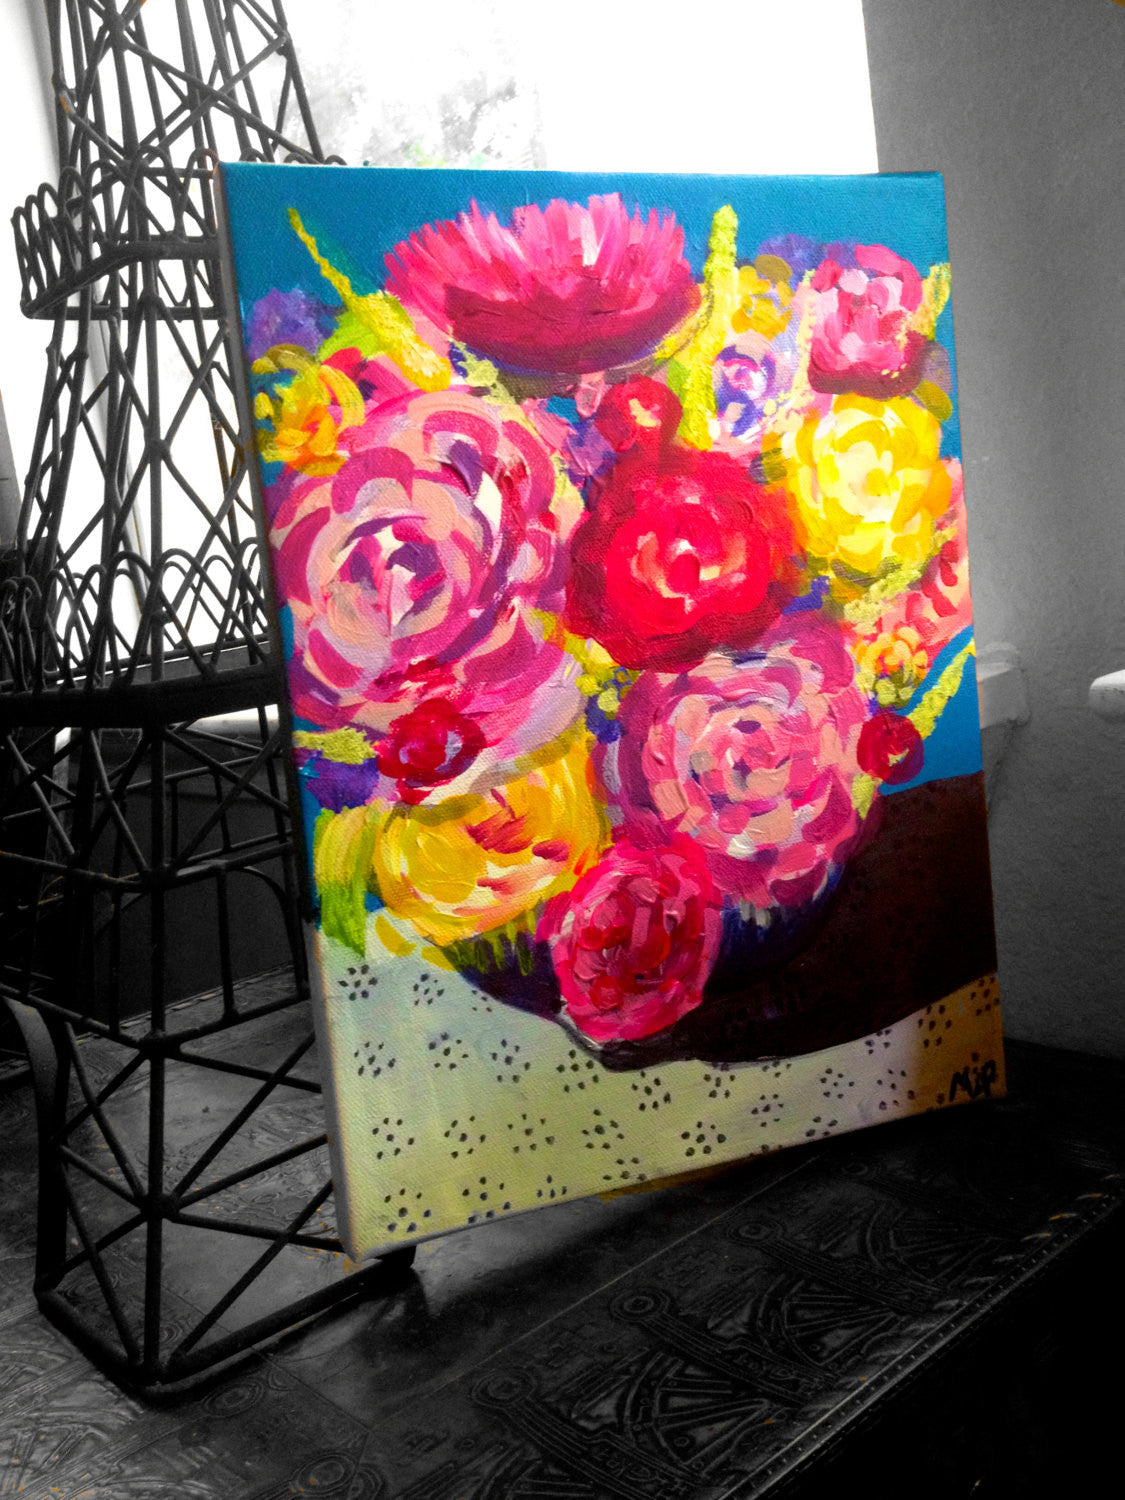 Original Floral Arrangement Painting. Acrylic on Canvas. Beautiful neon, bright tones of hot pink, orange, yellow add warmth to any day.